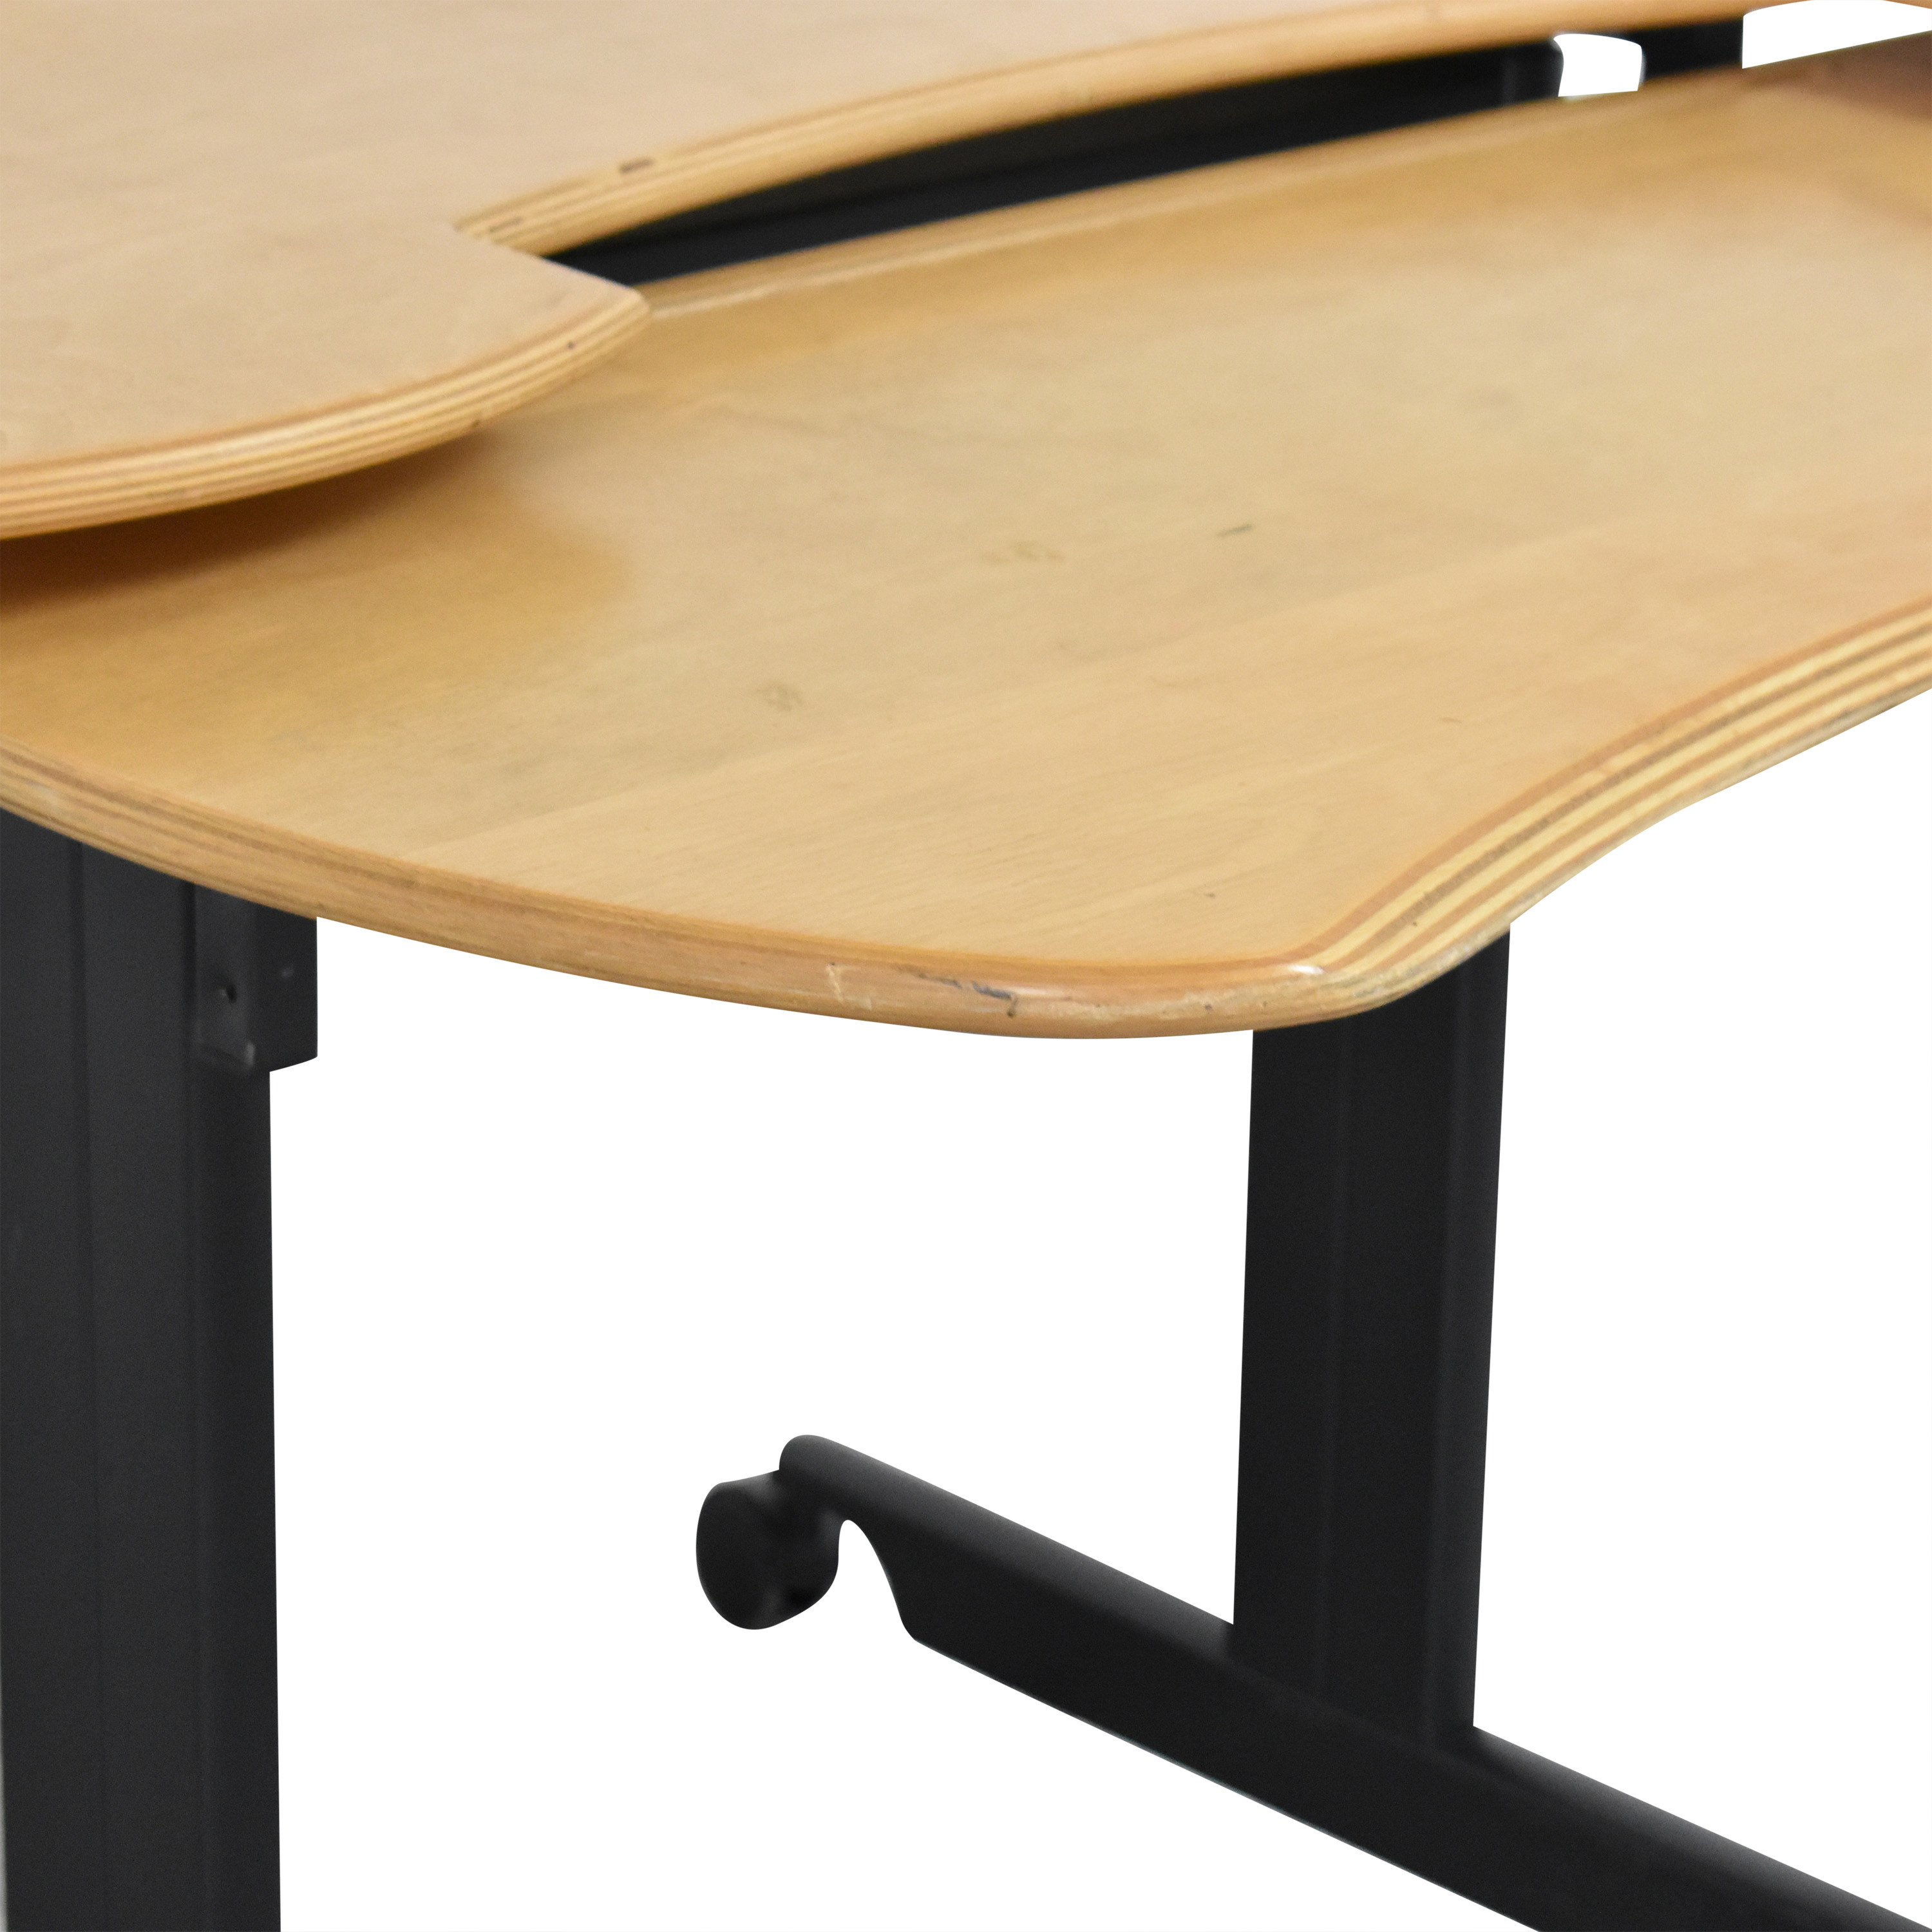 Biomorph Biomorph Tiered Desk second hand